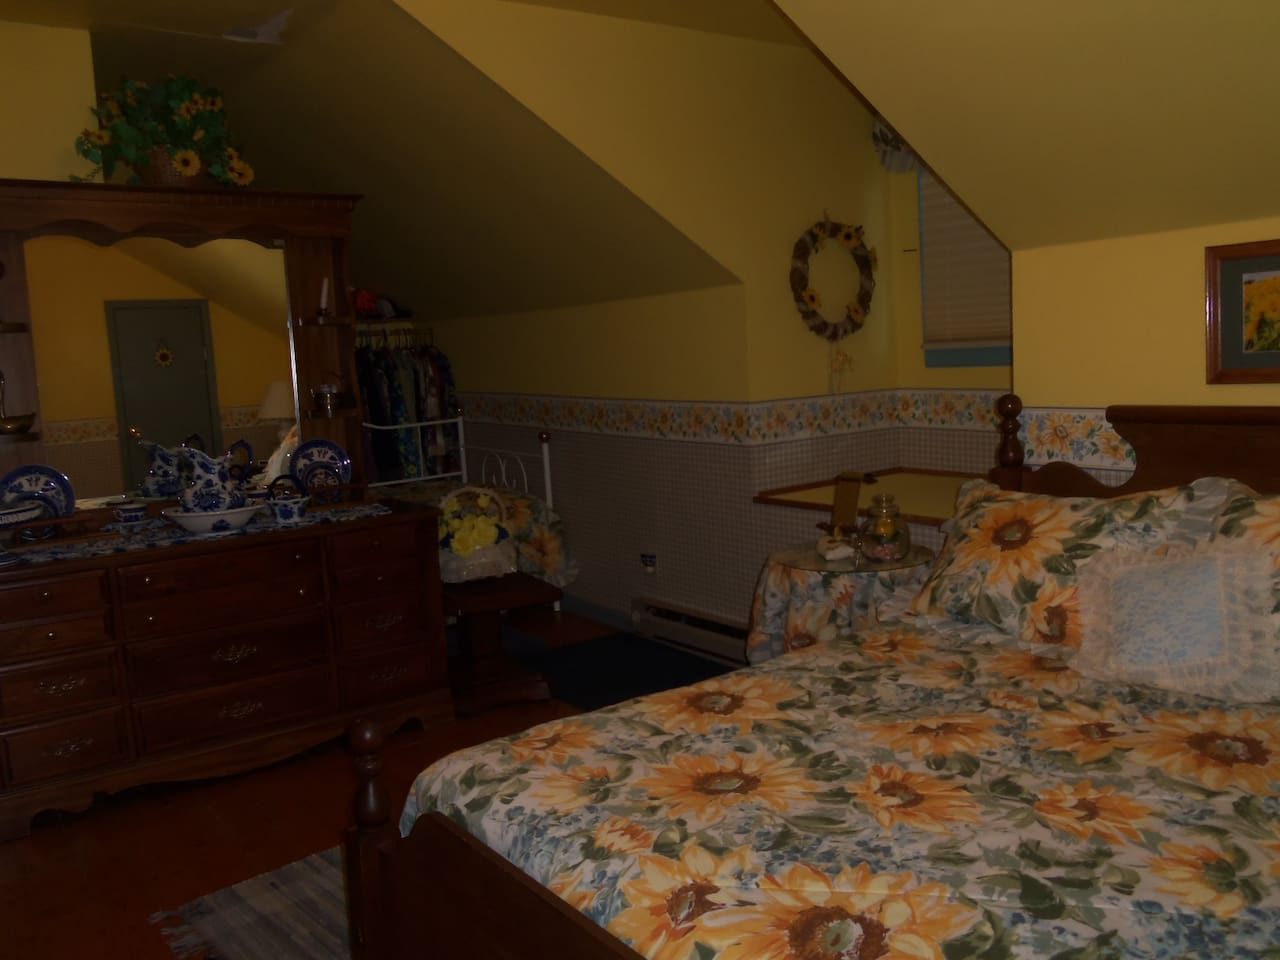 Sunflower Bedroom: 1 queen bed, 1 twin bed and a trundle twin bed